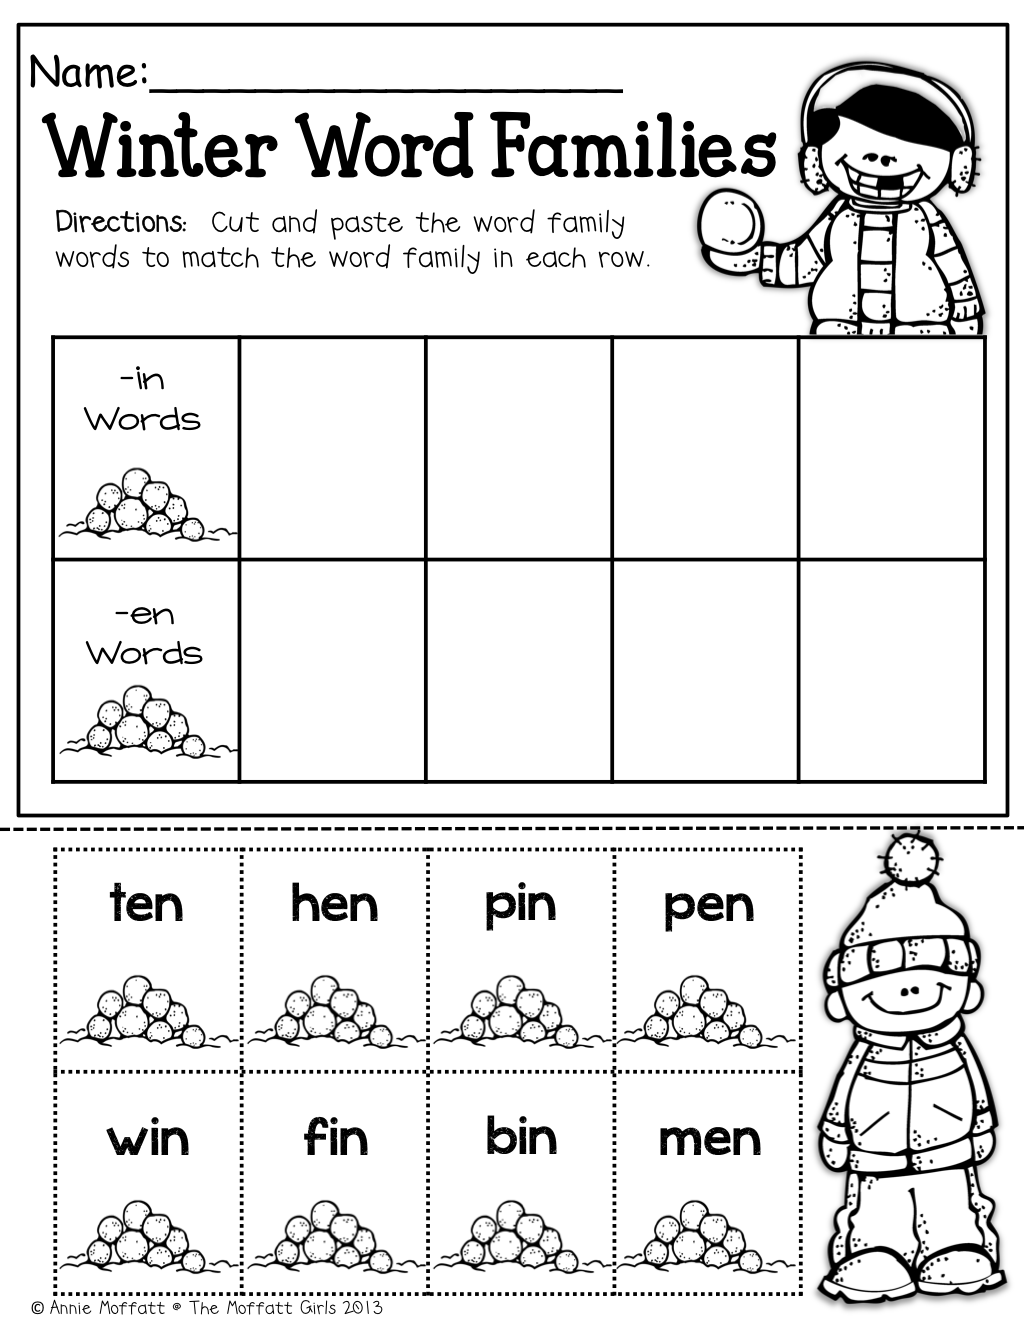 worksheet Am Word Family Worksheets winter word families great way to practice simple cvc words cut and paste